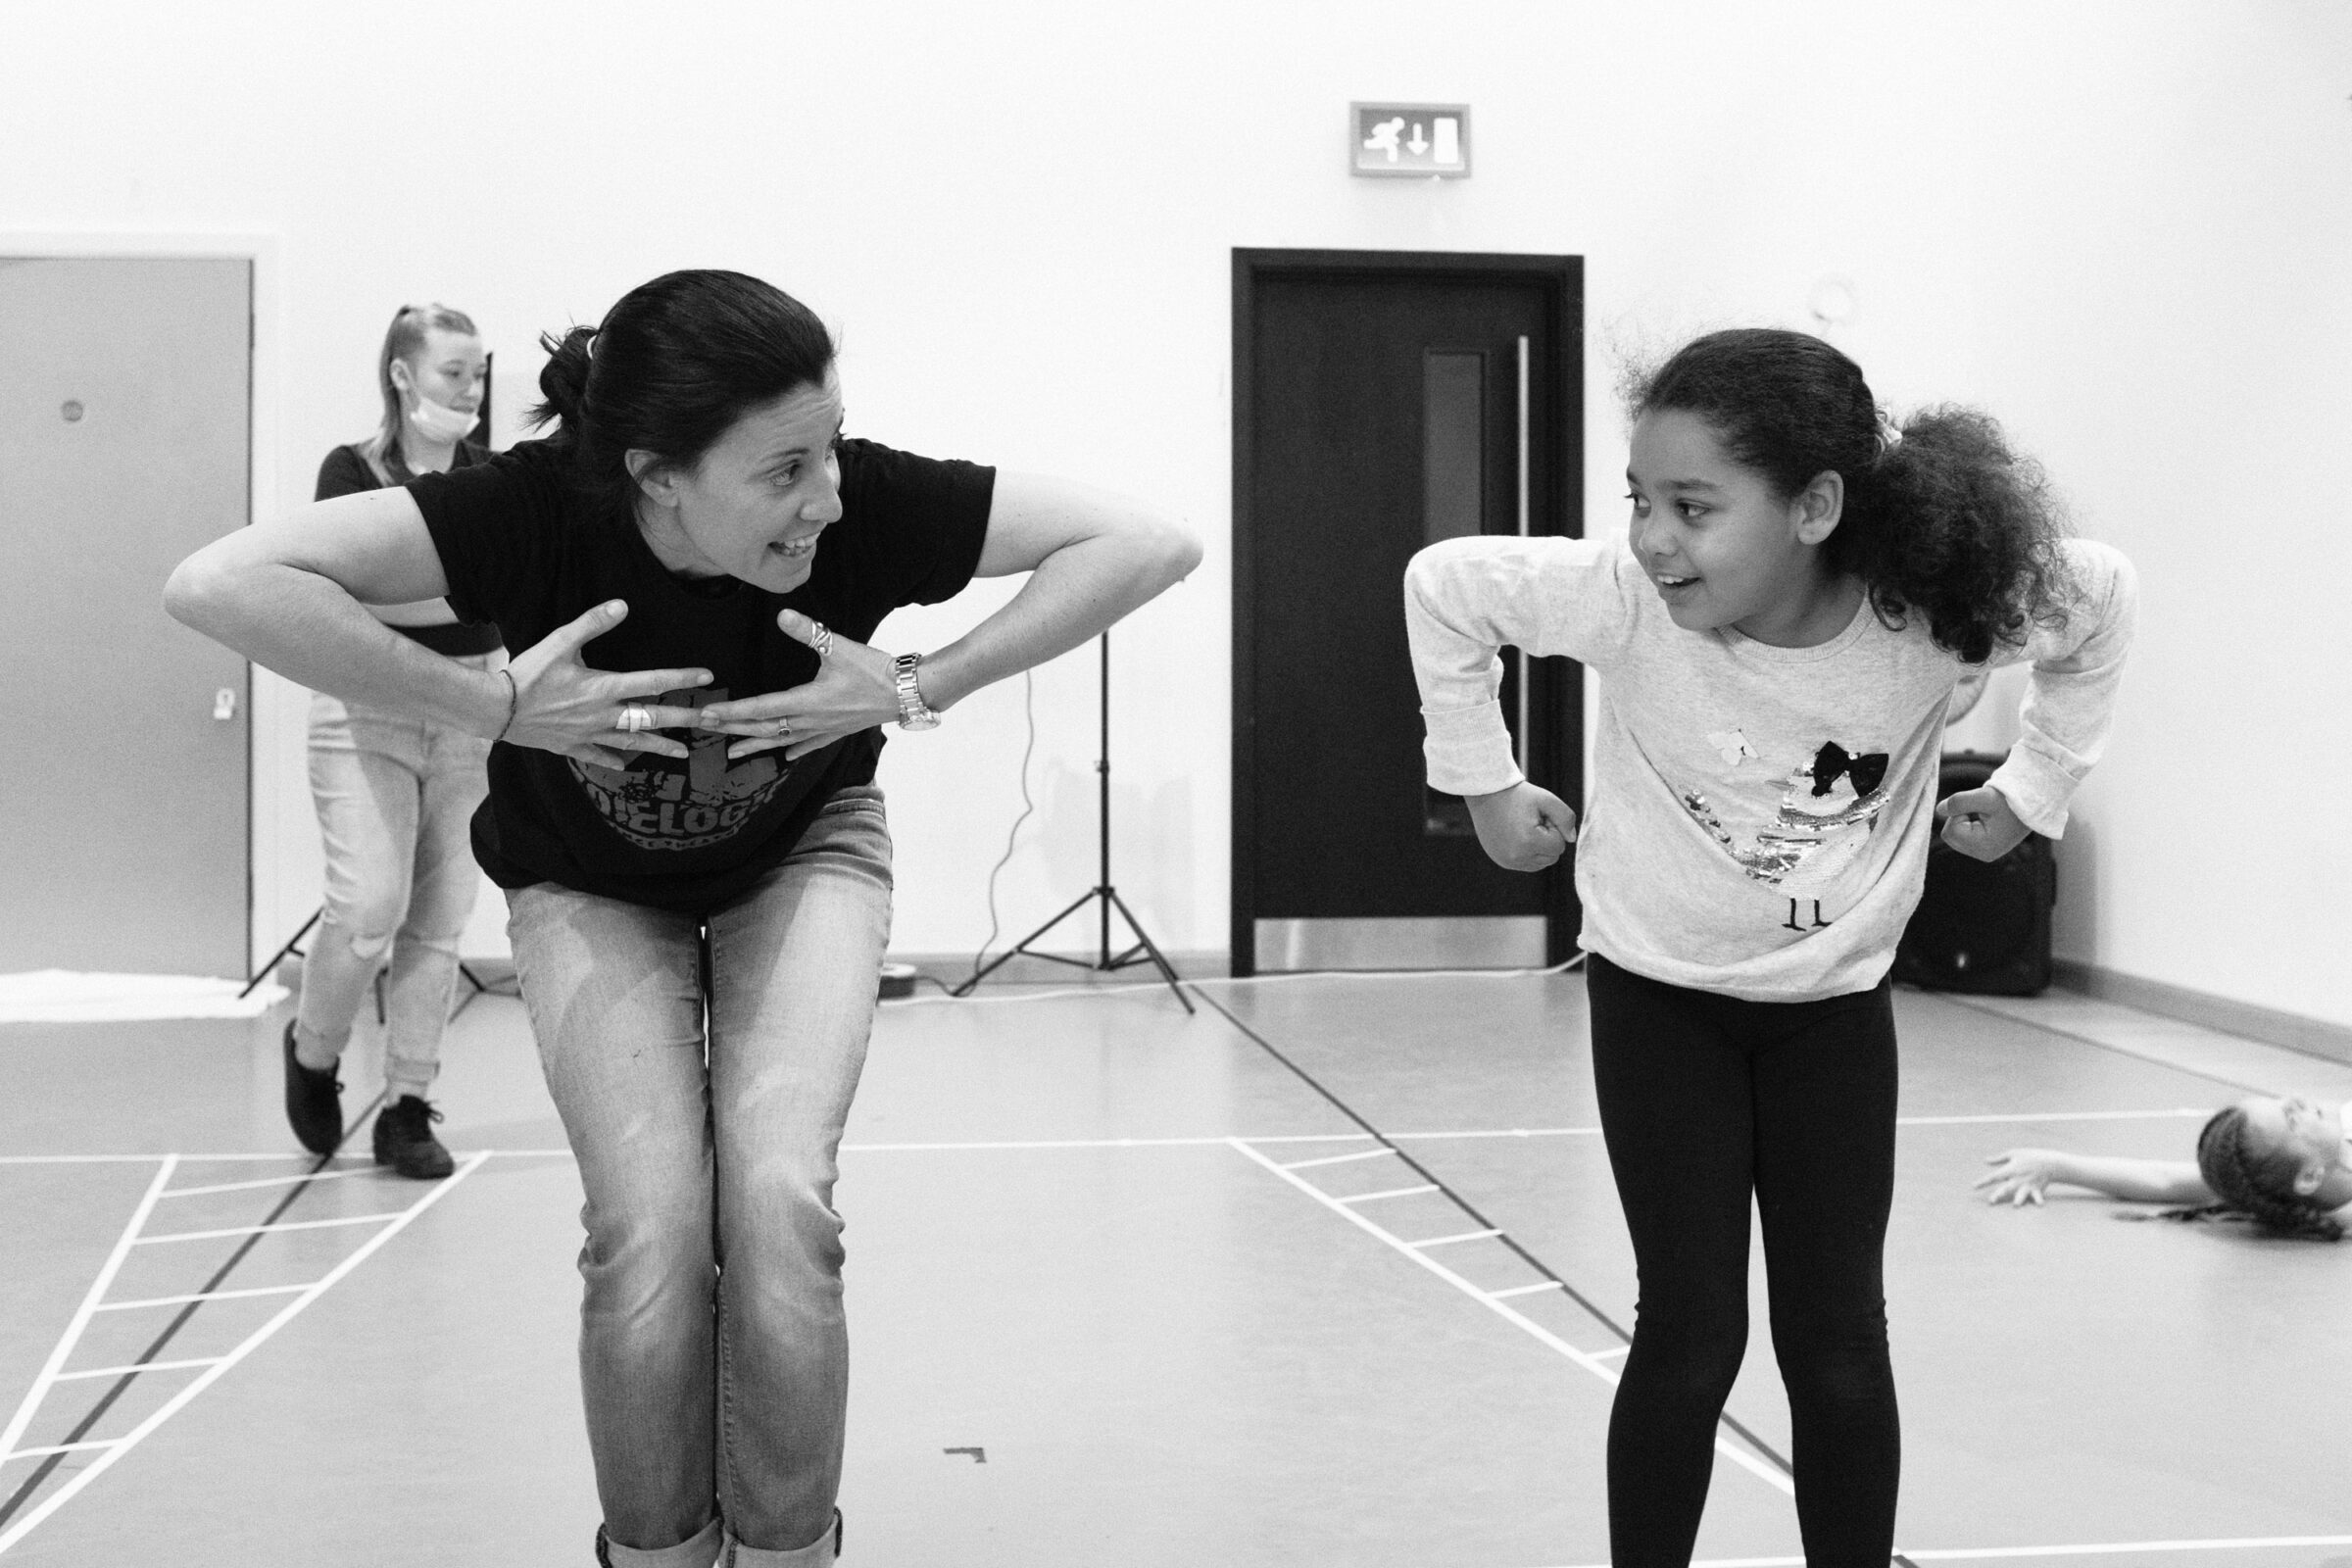 A dance facilitator works with a young girl in a dance studio